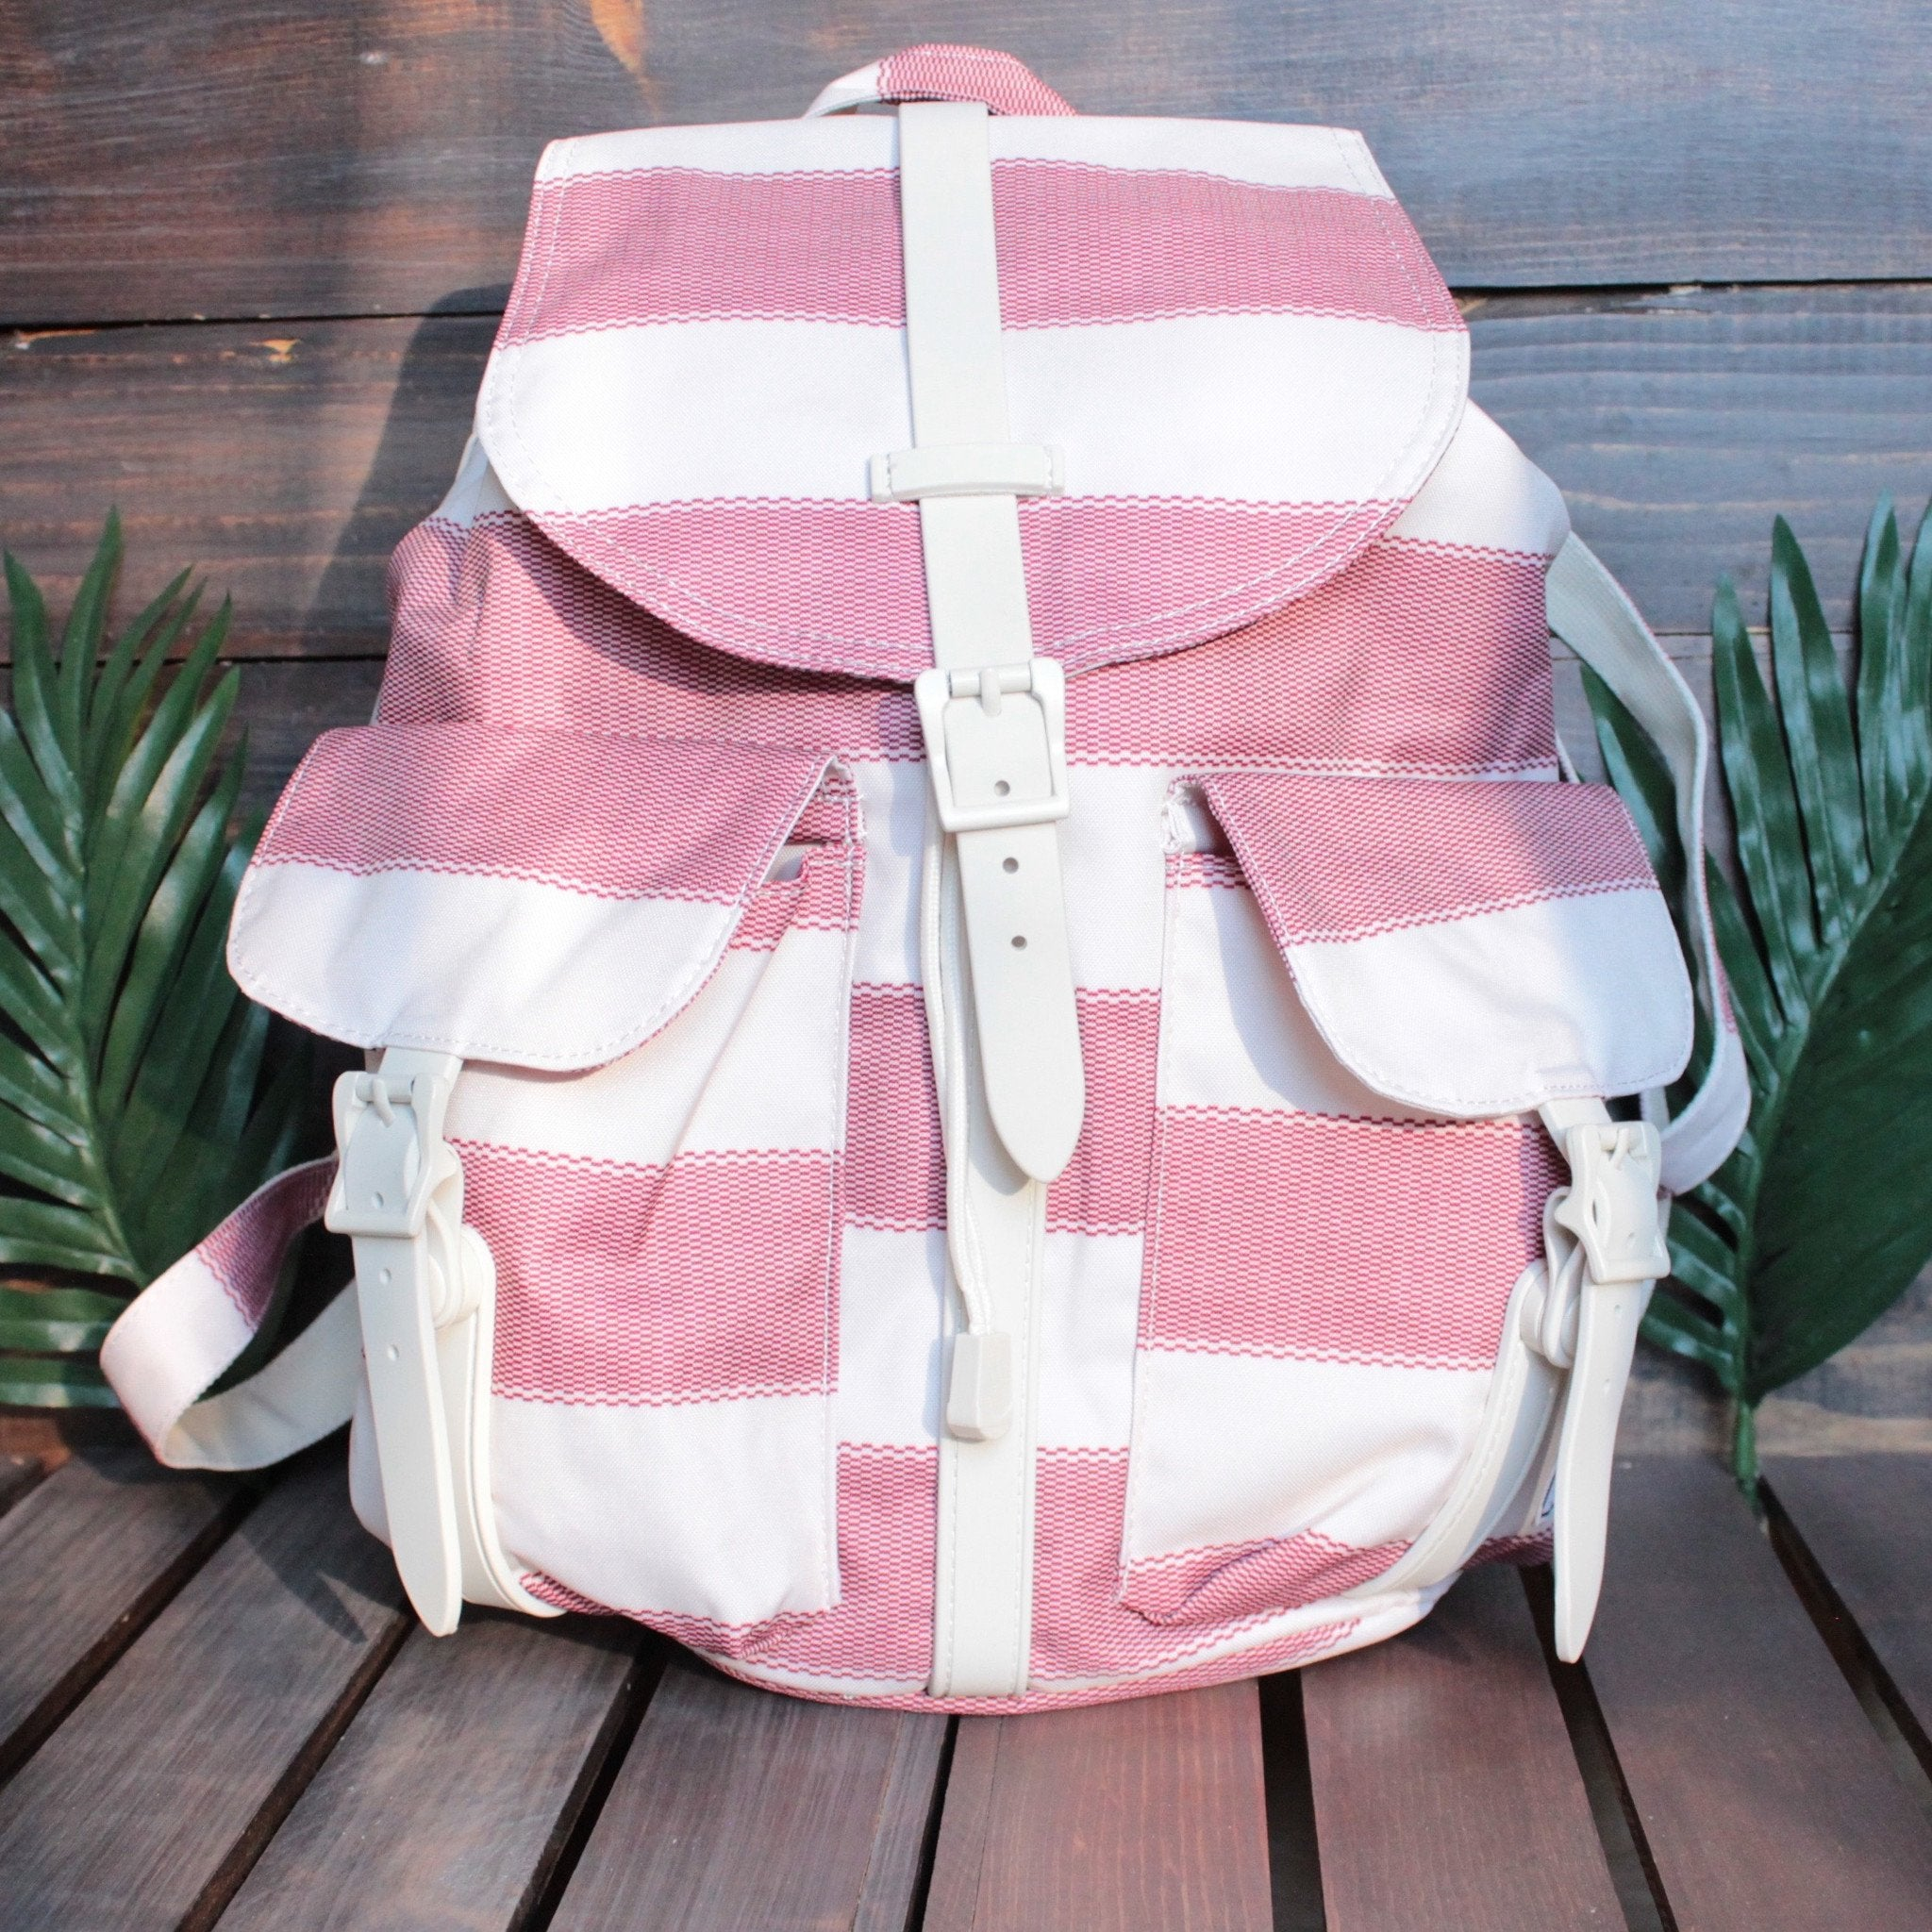 78a13bbc0a85 herschel supply co.  dawson - mid volume  backpack - shophearts - 1